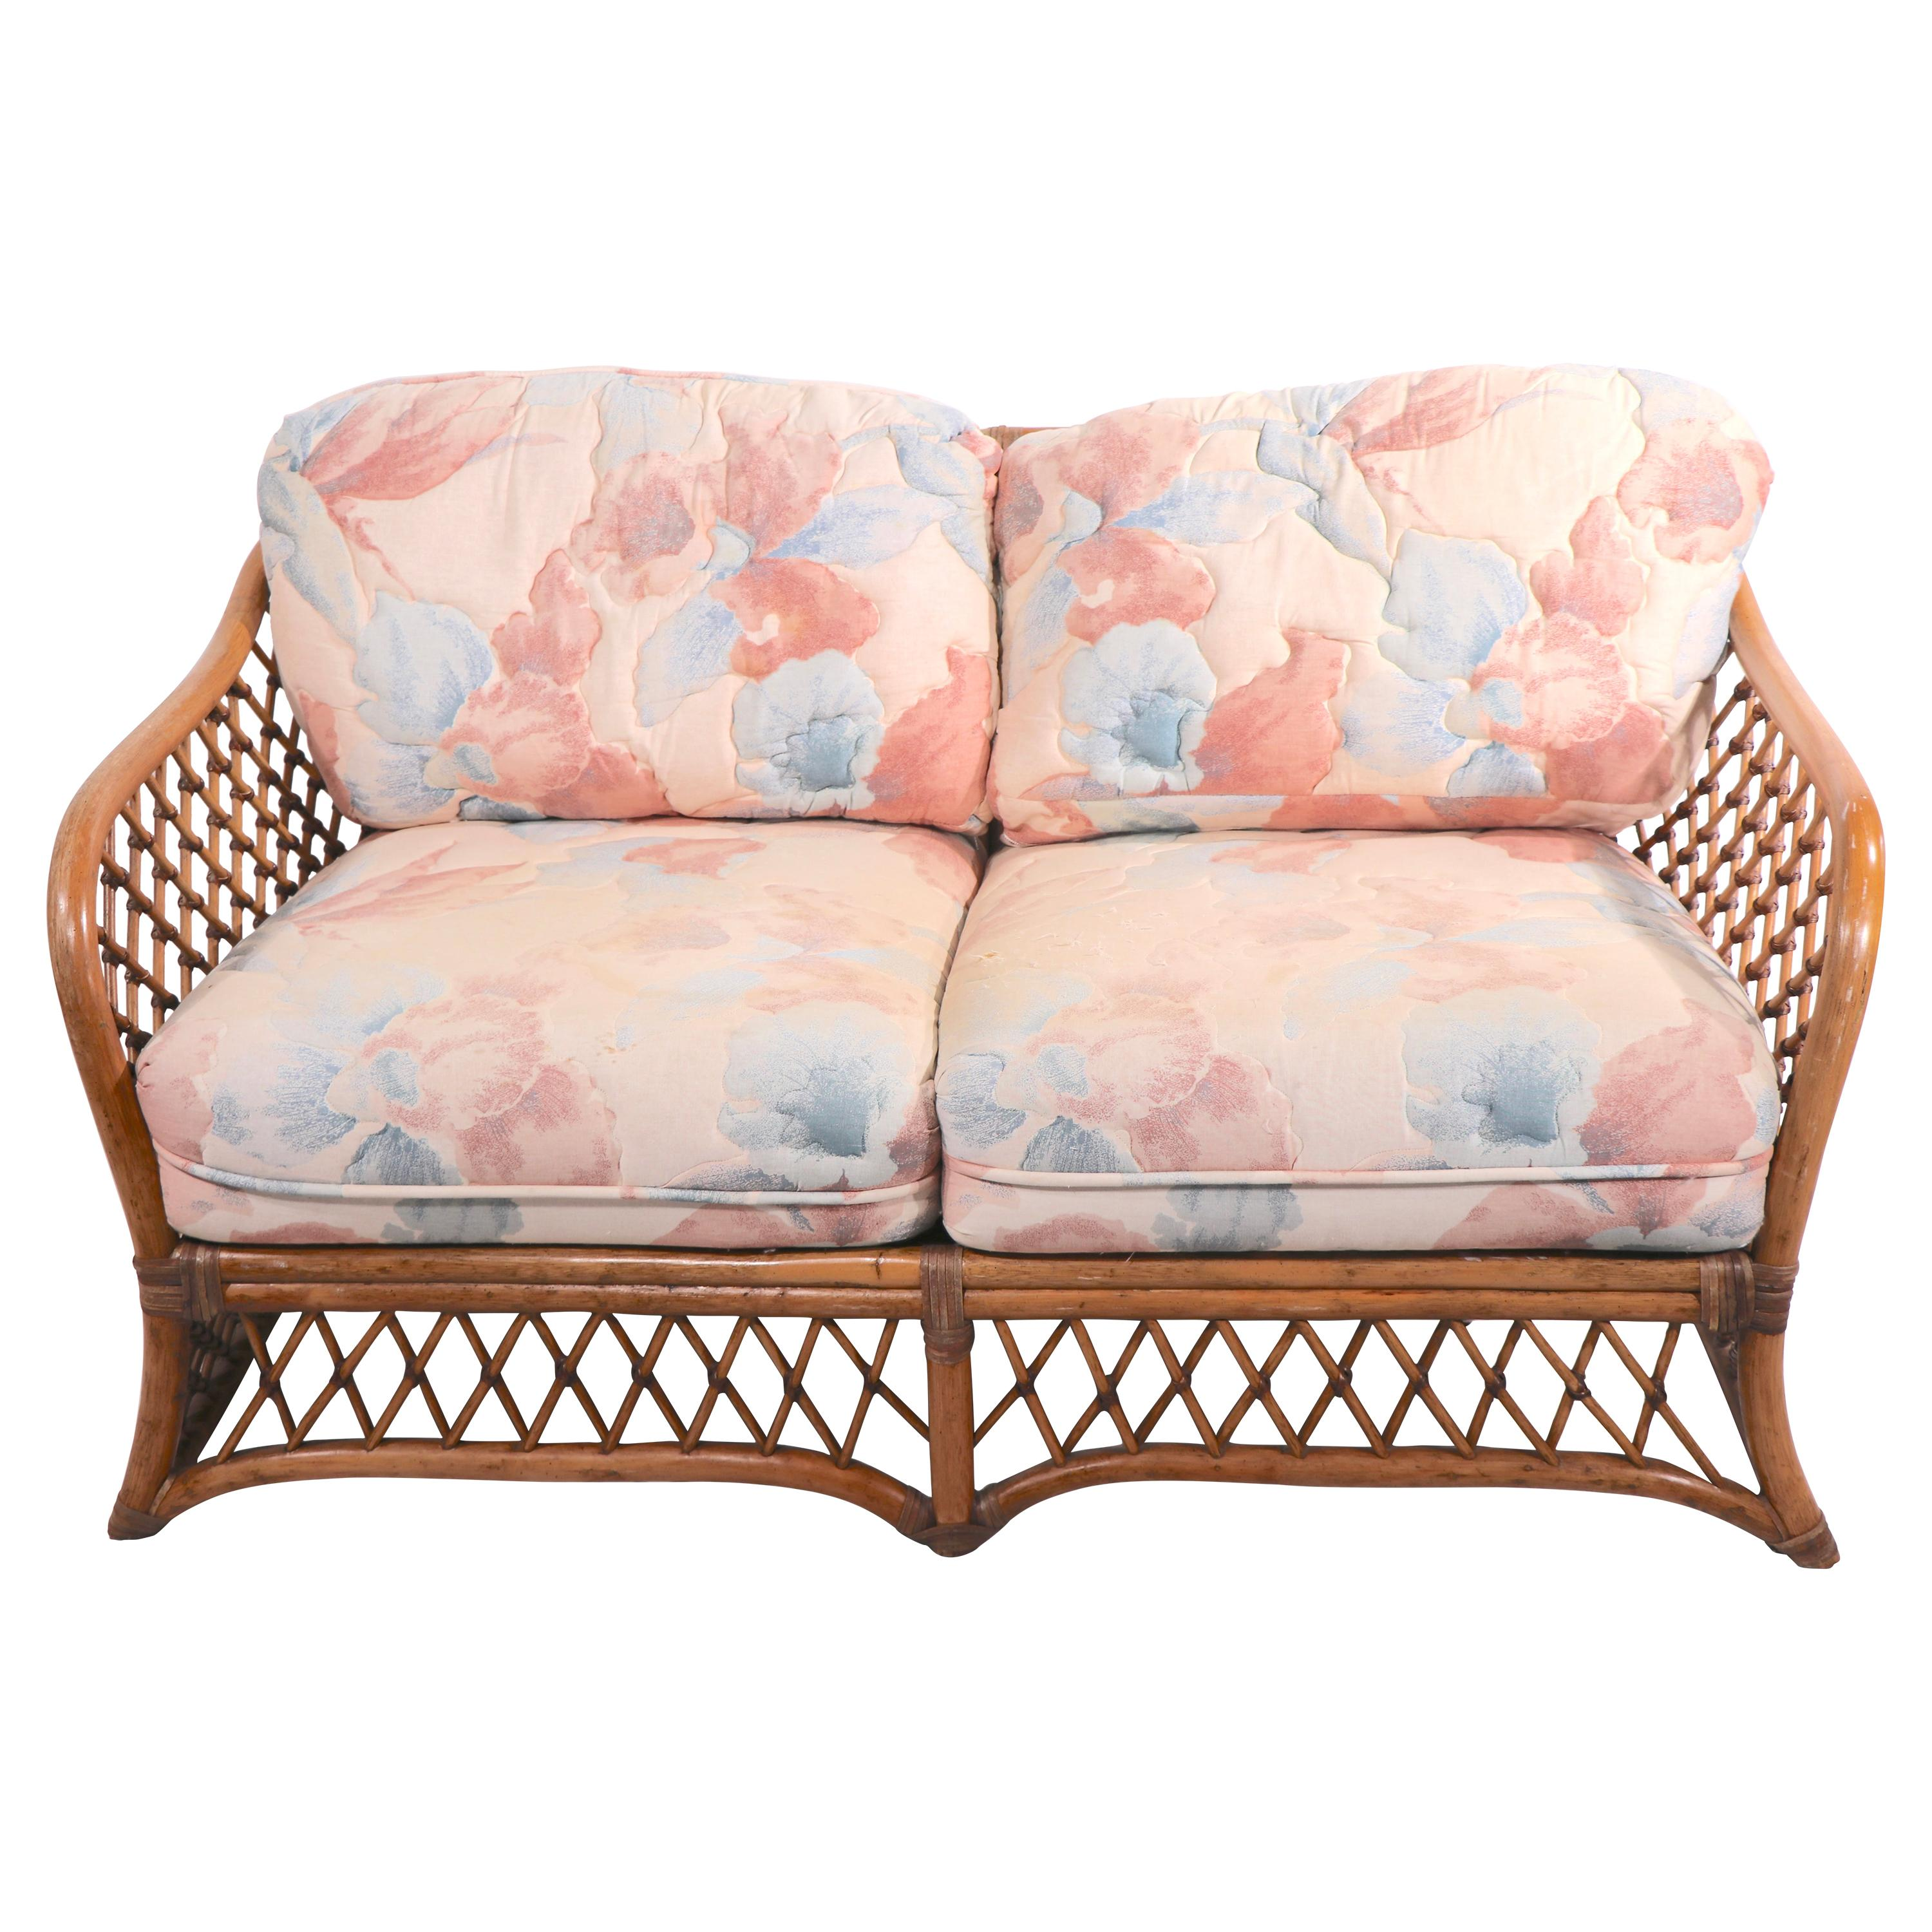 Bamboo Settee Loveseat Sofa with Leather Wrapping